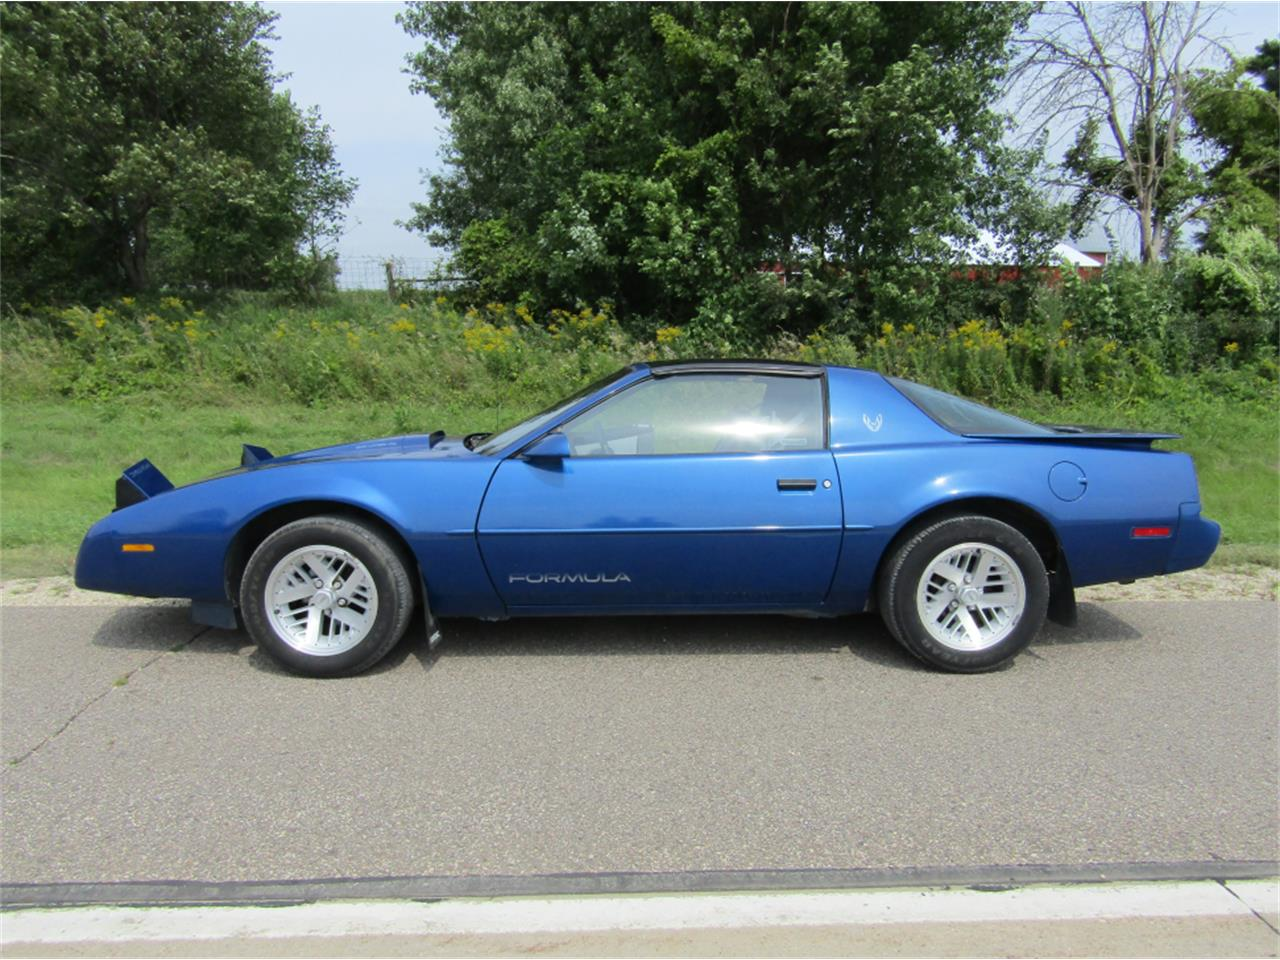 Large Picture of 1991 Firebird Formula - $7,900.00 Offered by a Private Seller - LQ9D